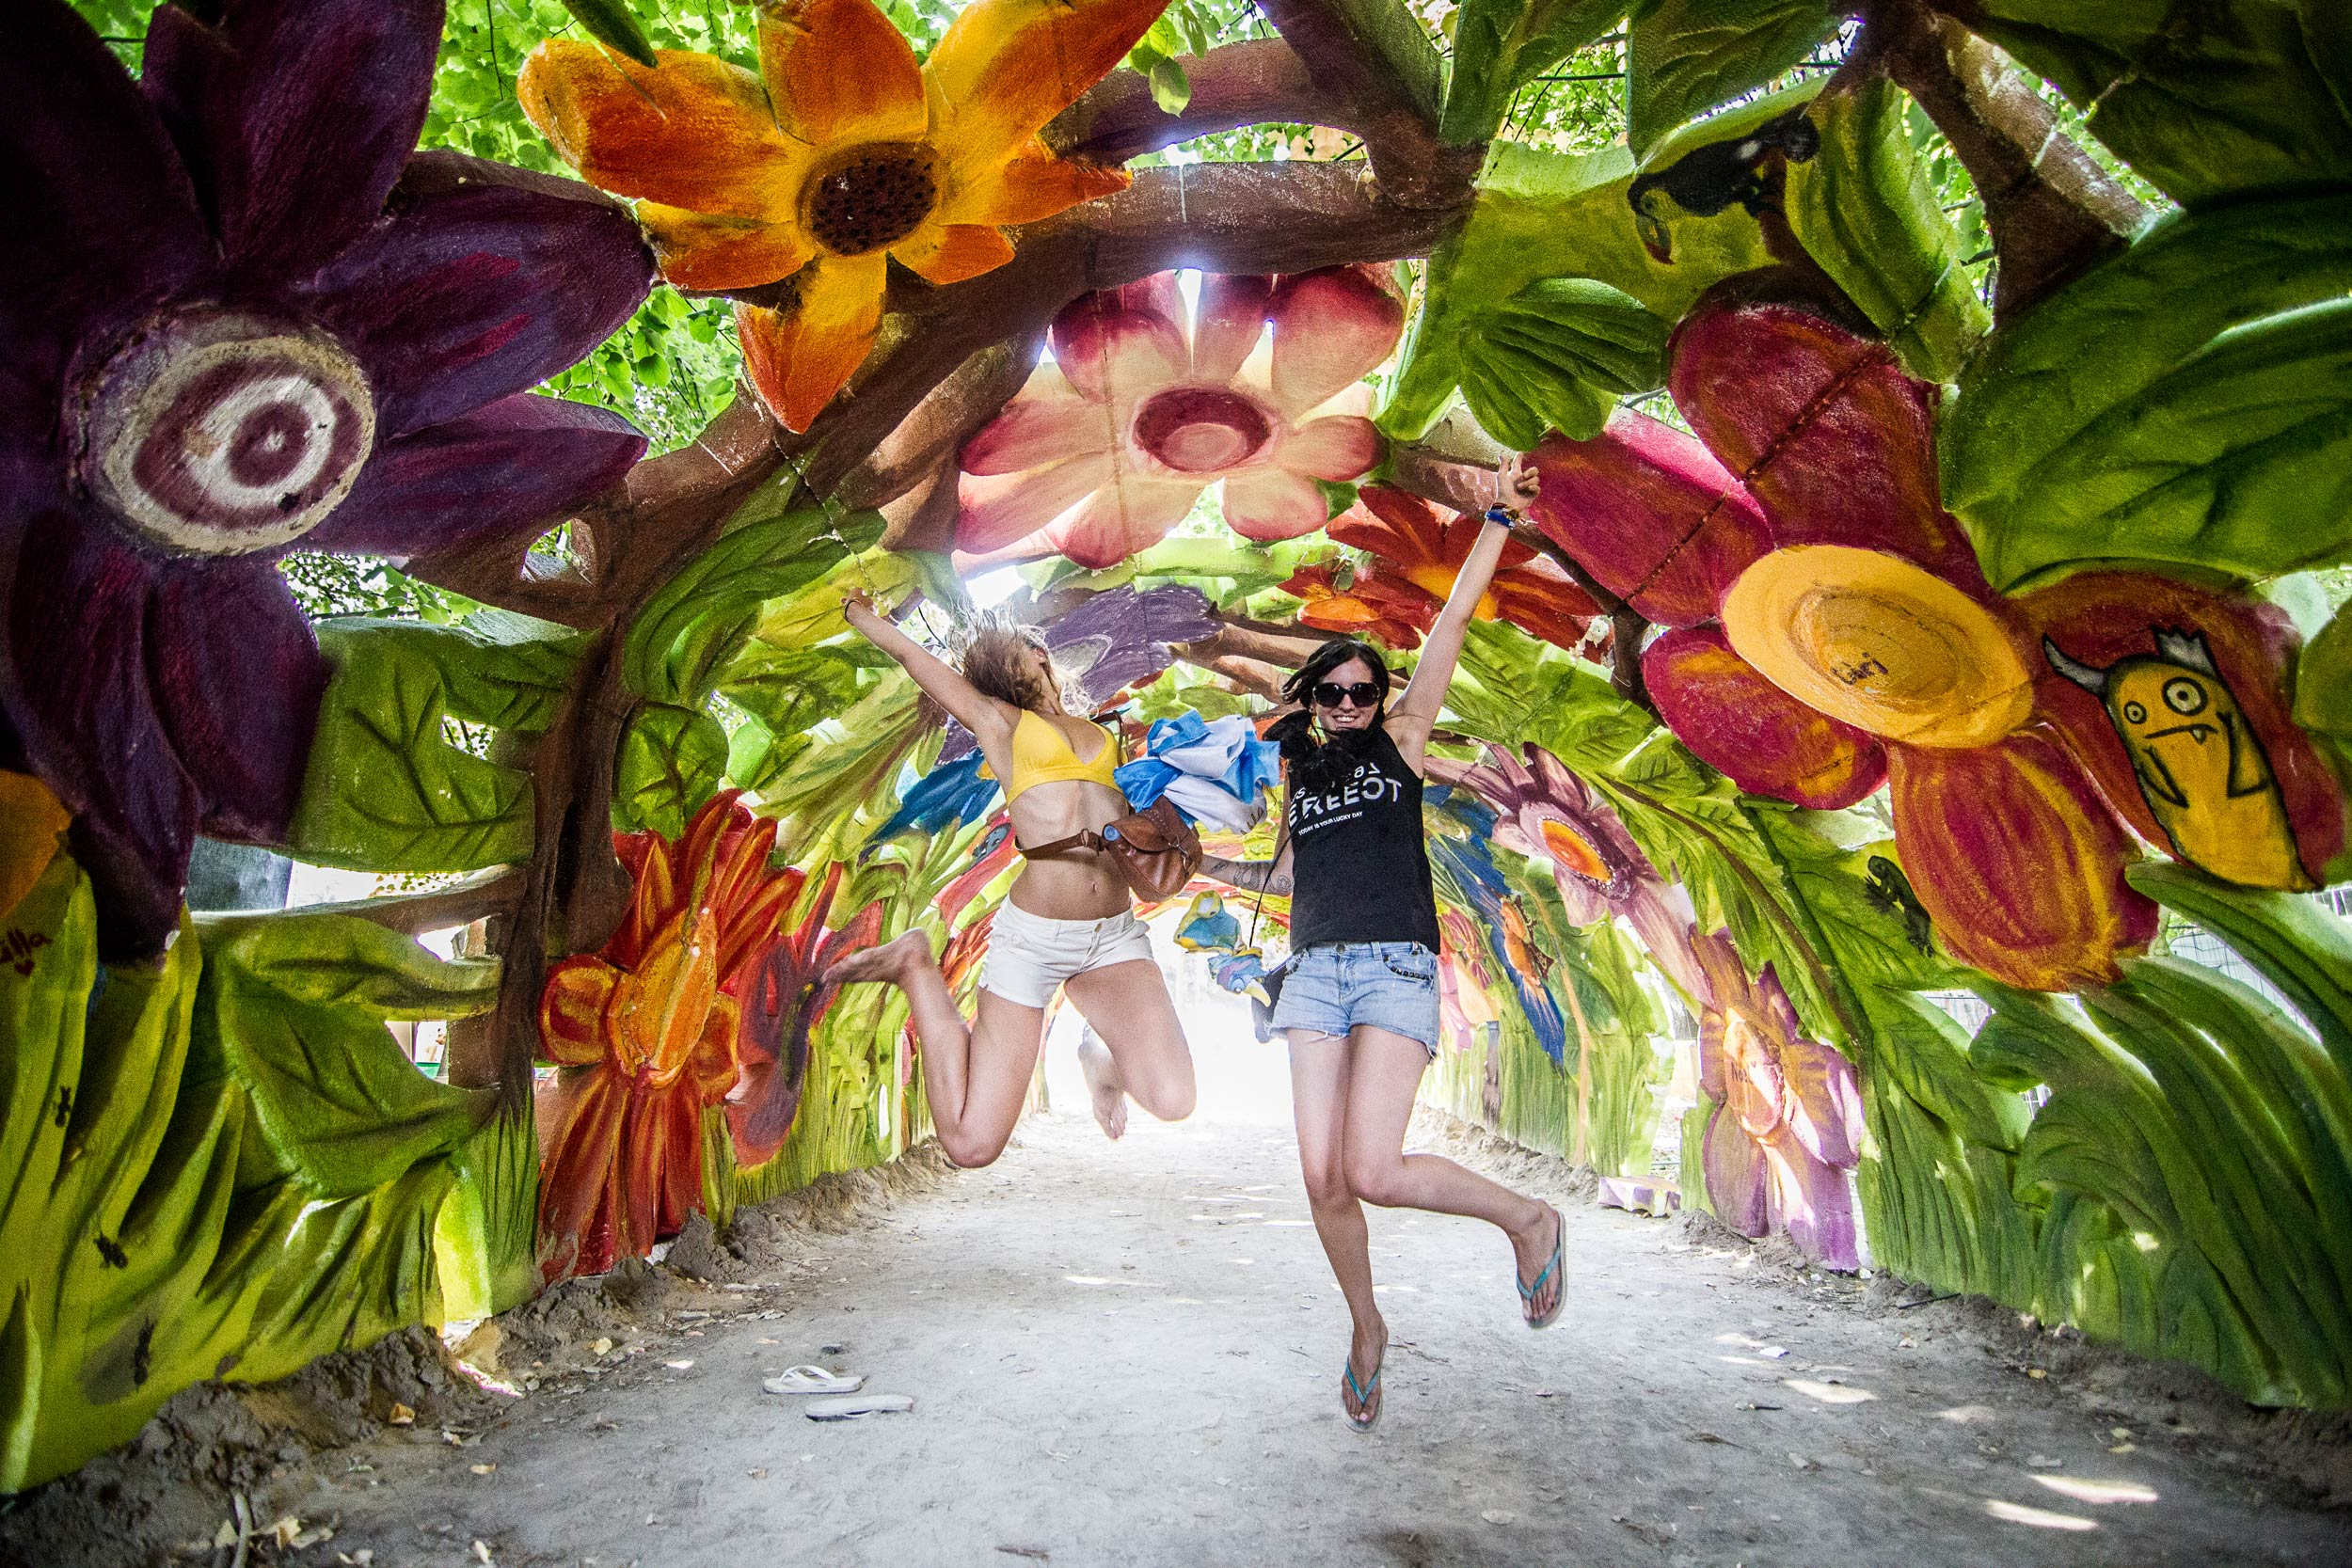 Girls jumping up in the air inside a Sziget sculpture